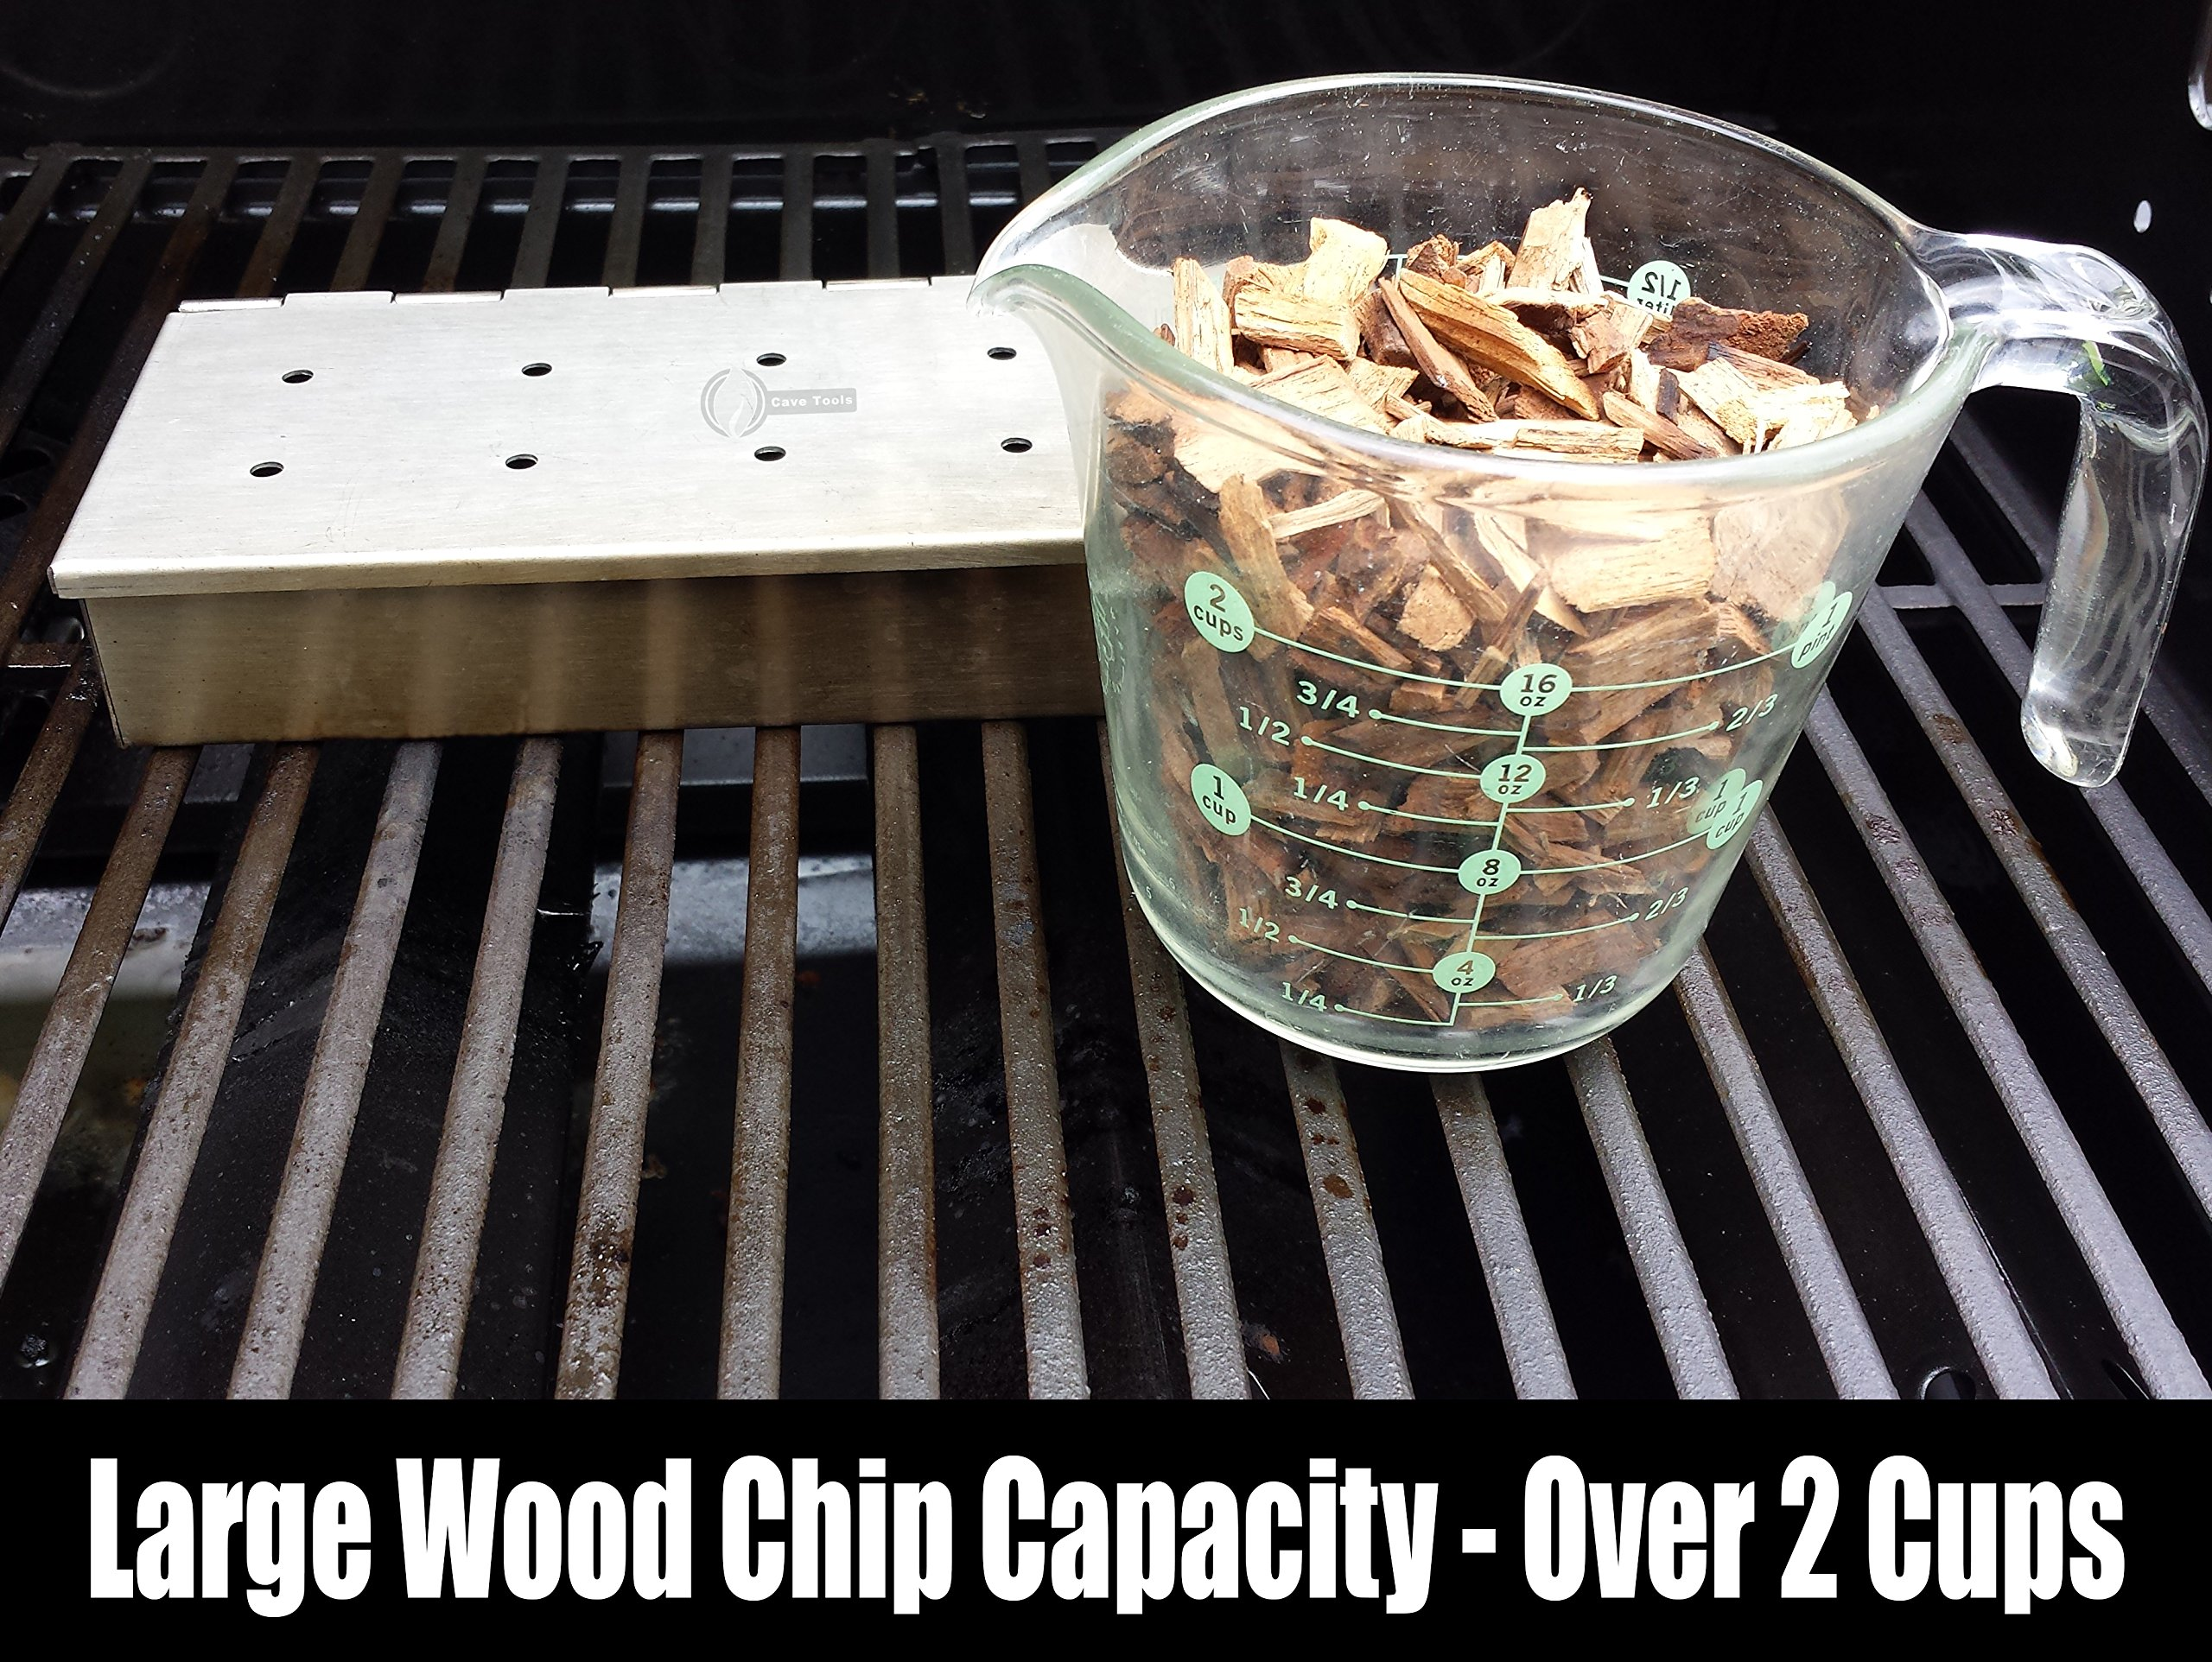 Tenderizer Mallet + Smoker Box for BBQ Grill Wood Chips - 25% Thicker Stainless Steel Won't Warp - Charcoal & Gas Barbecue Meat Smoking Hinged Lid - Grilling Accessories Gift for Dad by Cave Tools (Image #2)